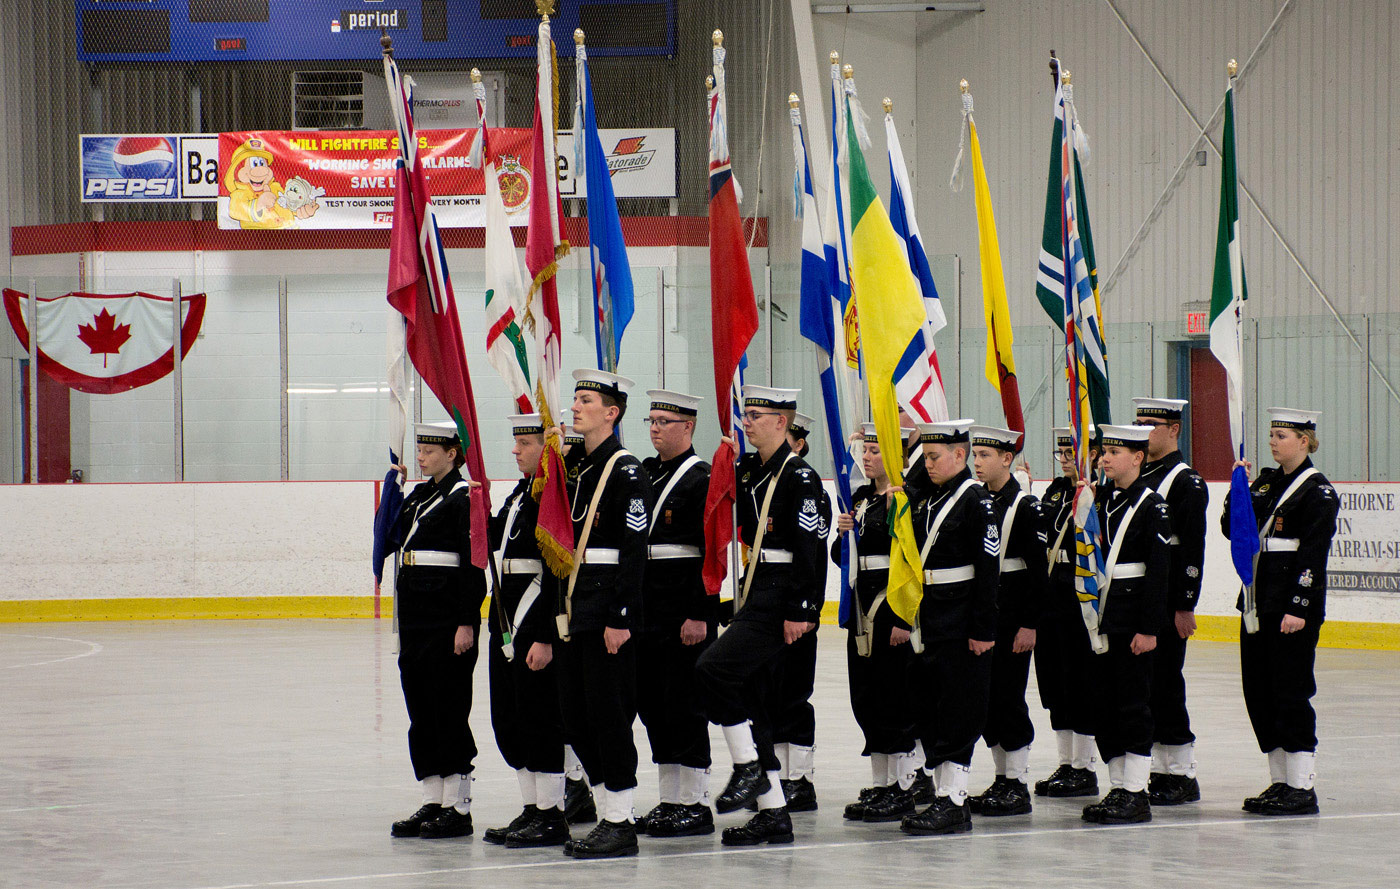 Skeena Sea Cadets - with flags of Confederation